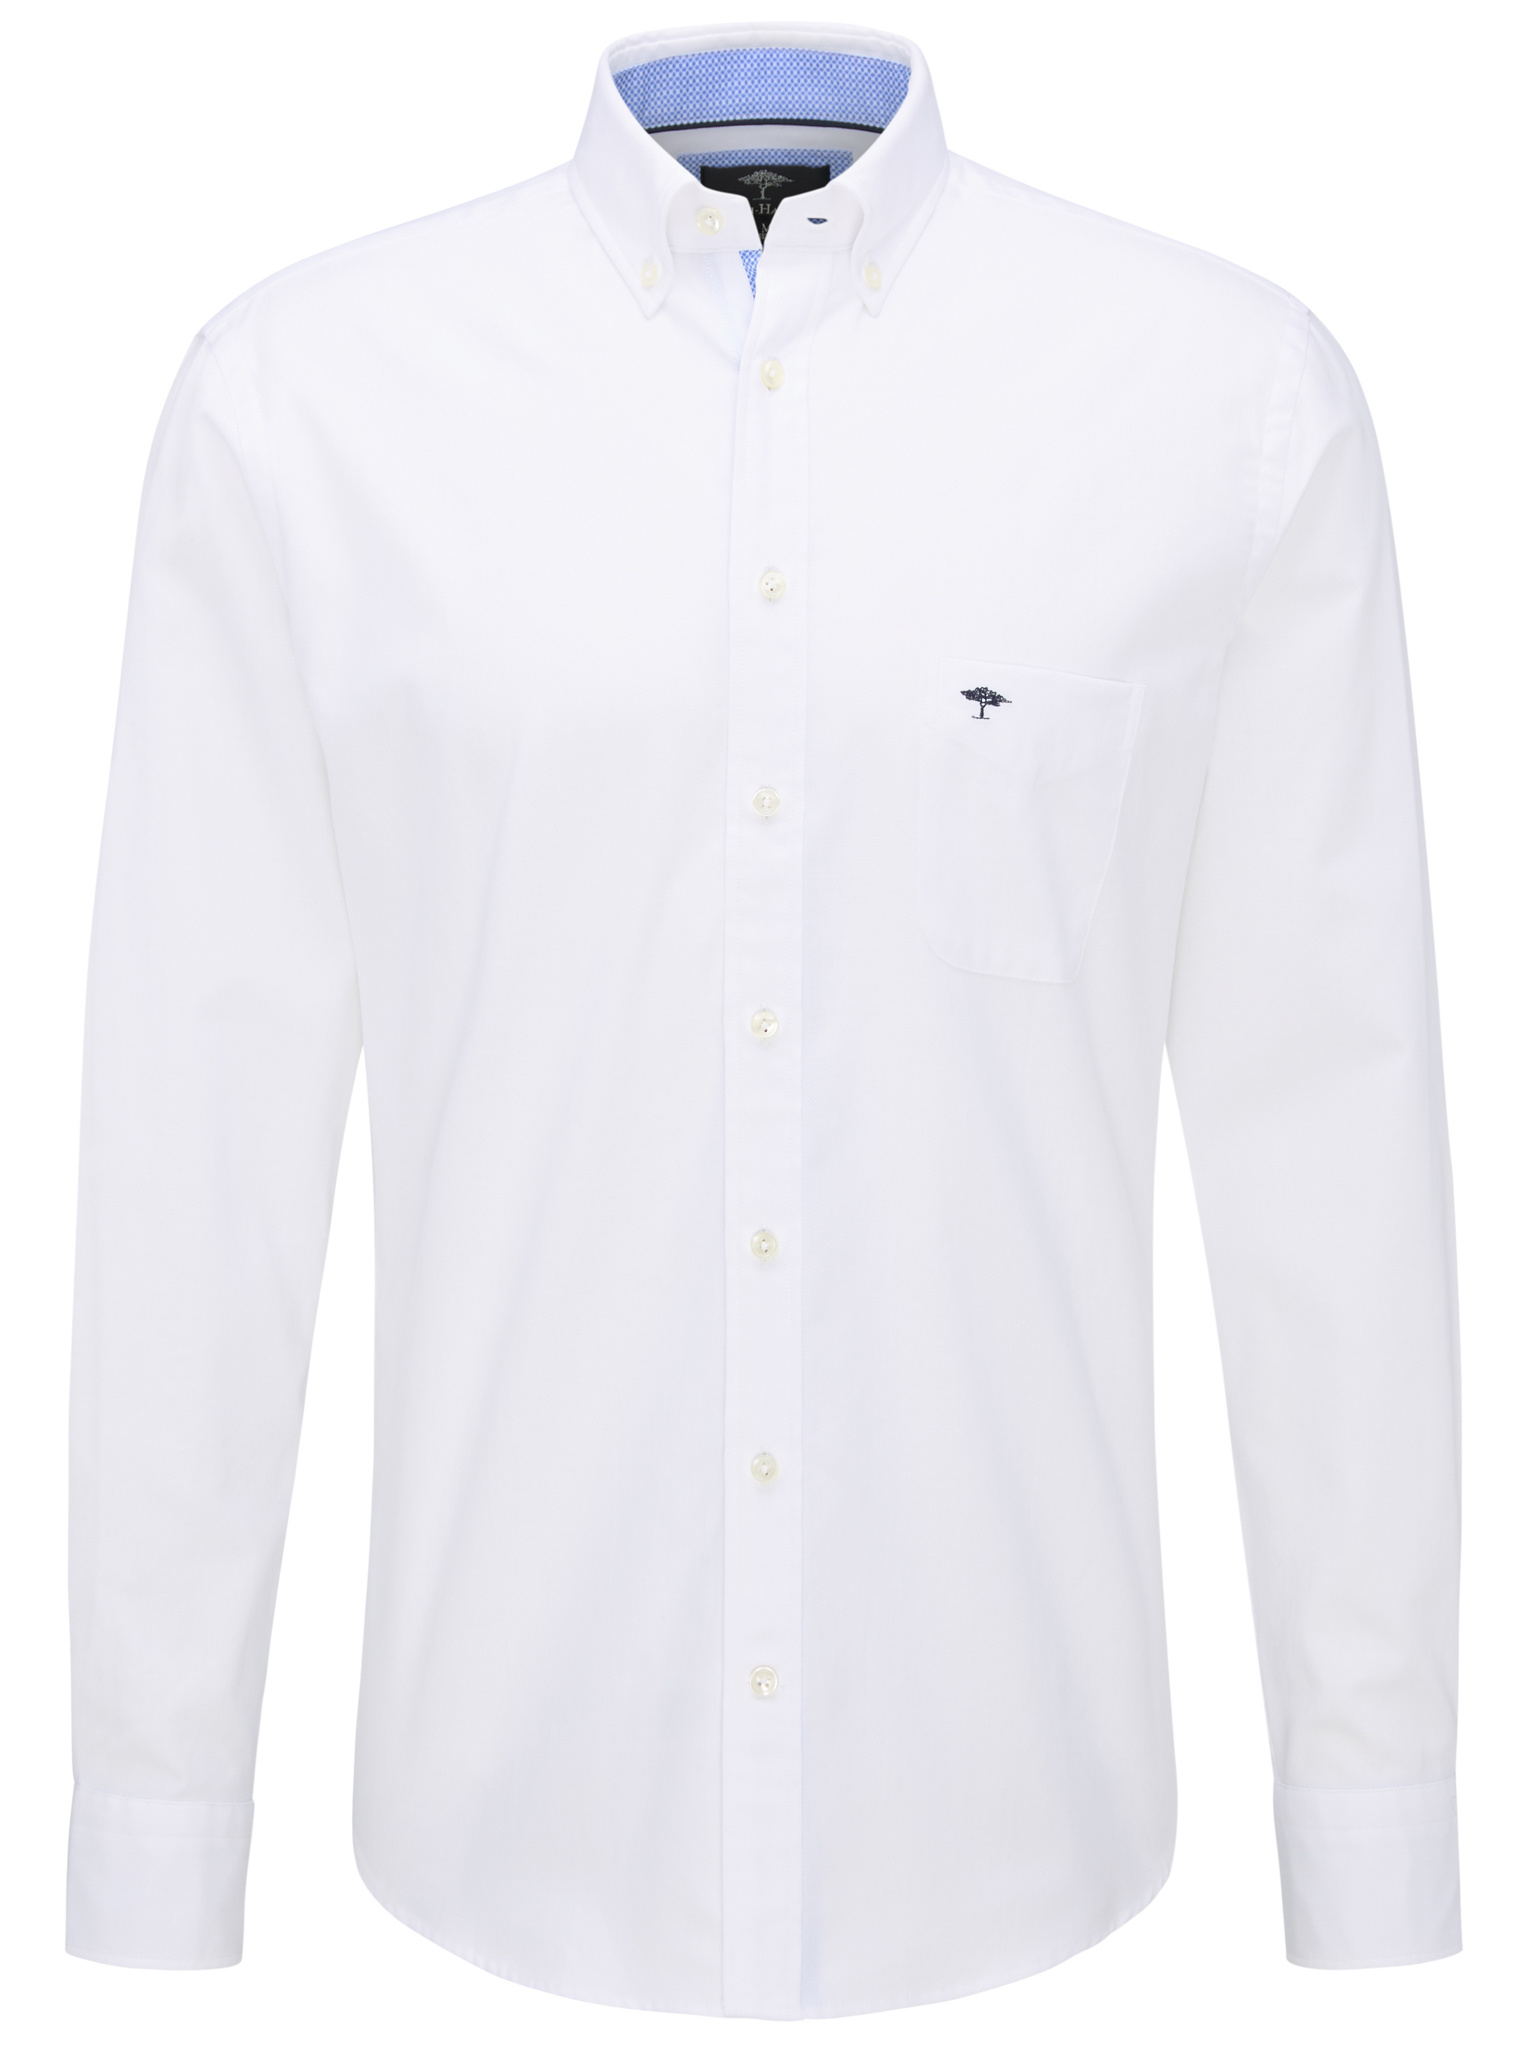 FYNCH chemise blanche-1